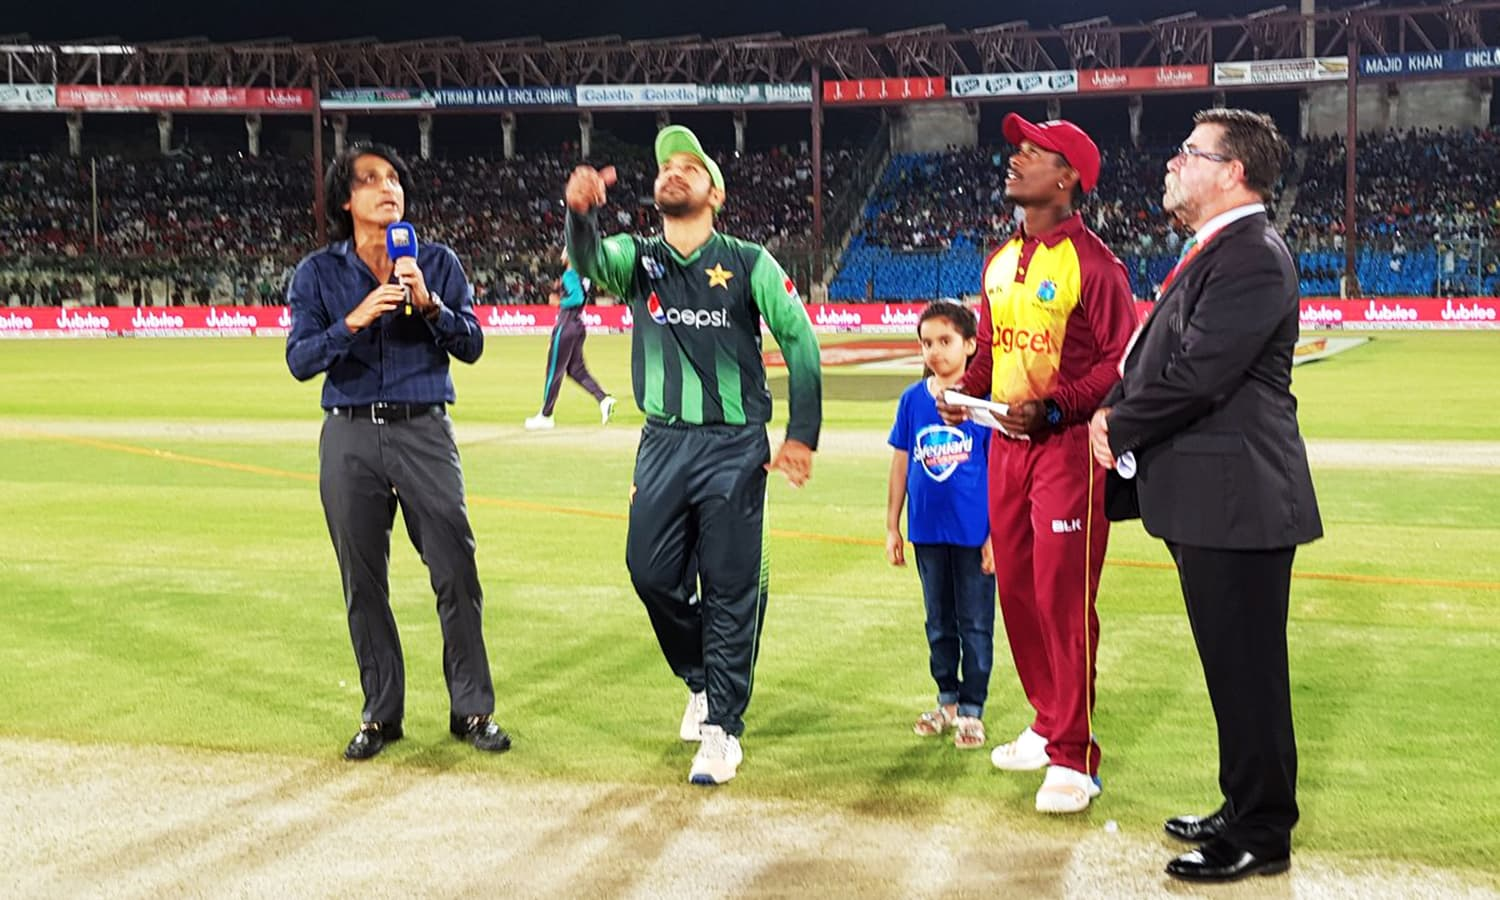 West Indies won the toss and chose to field.